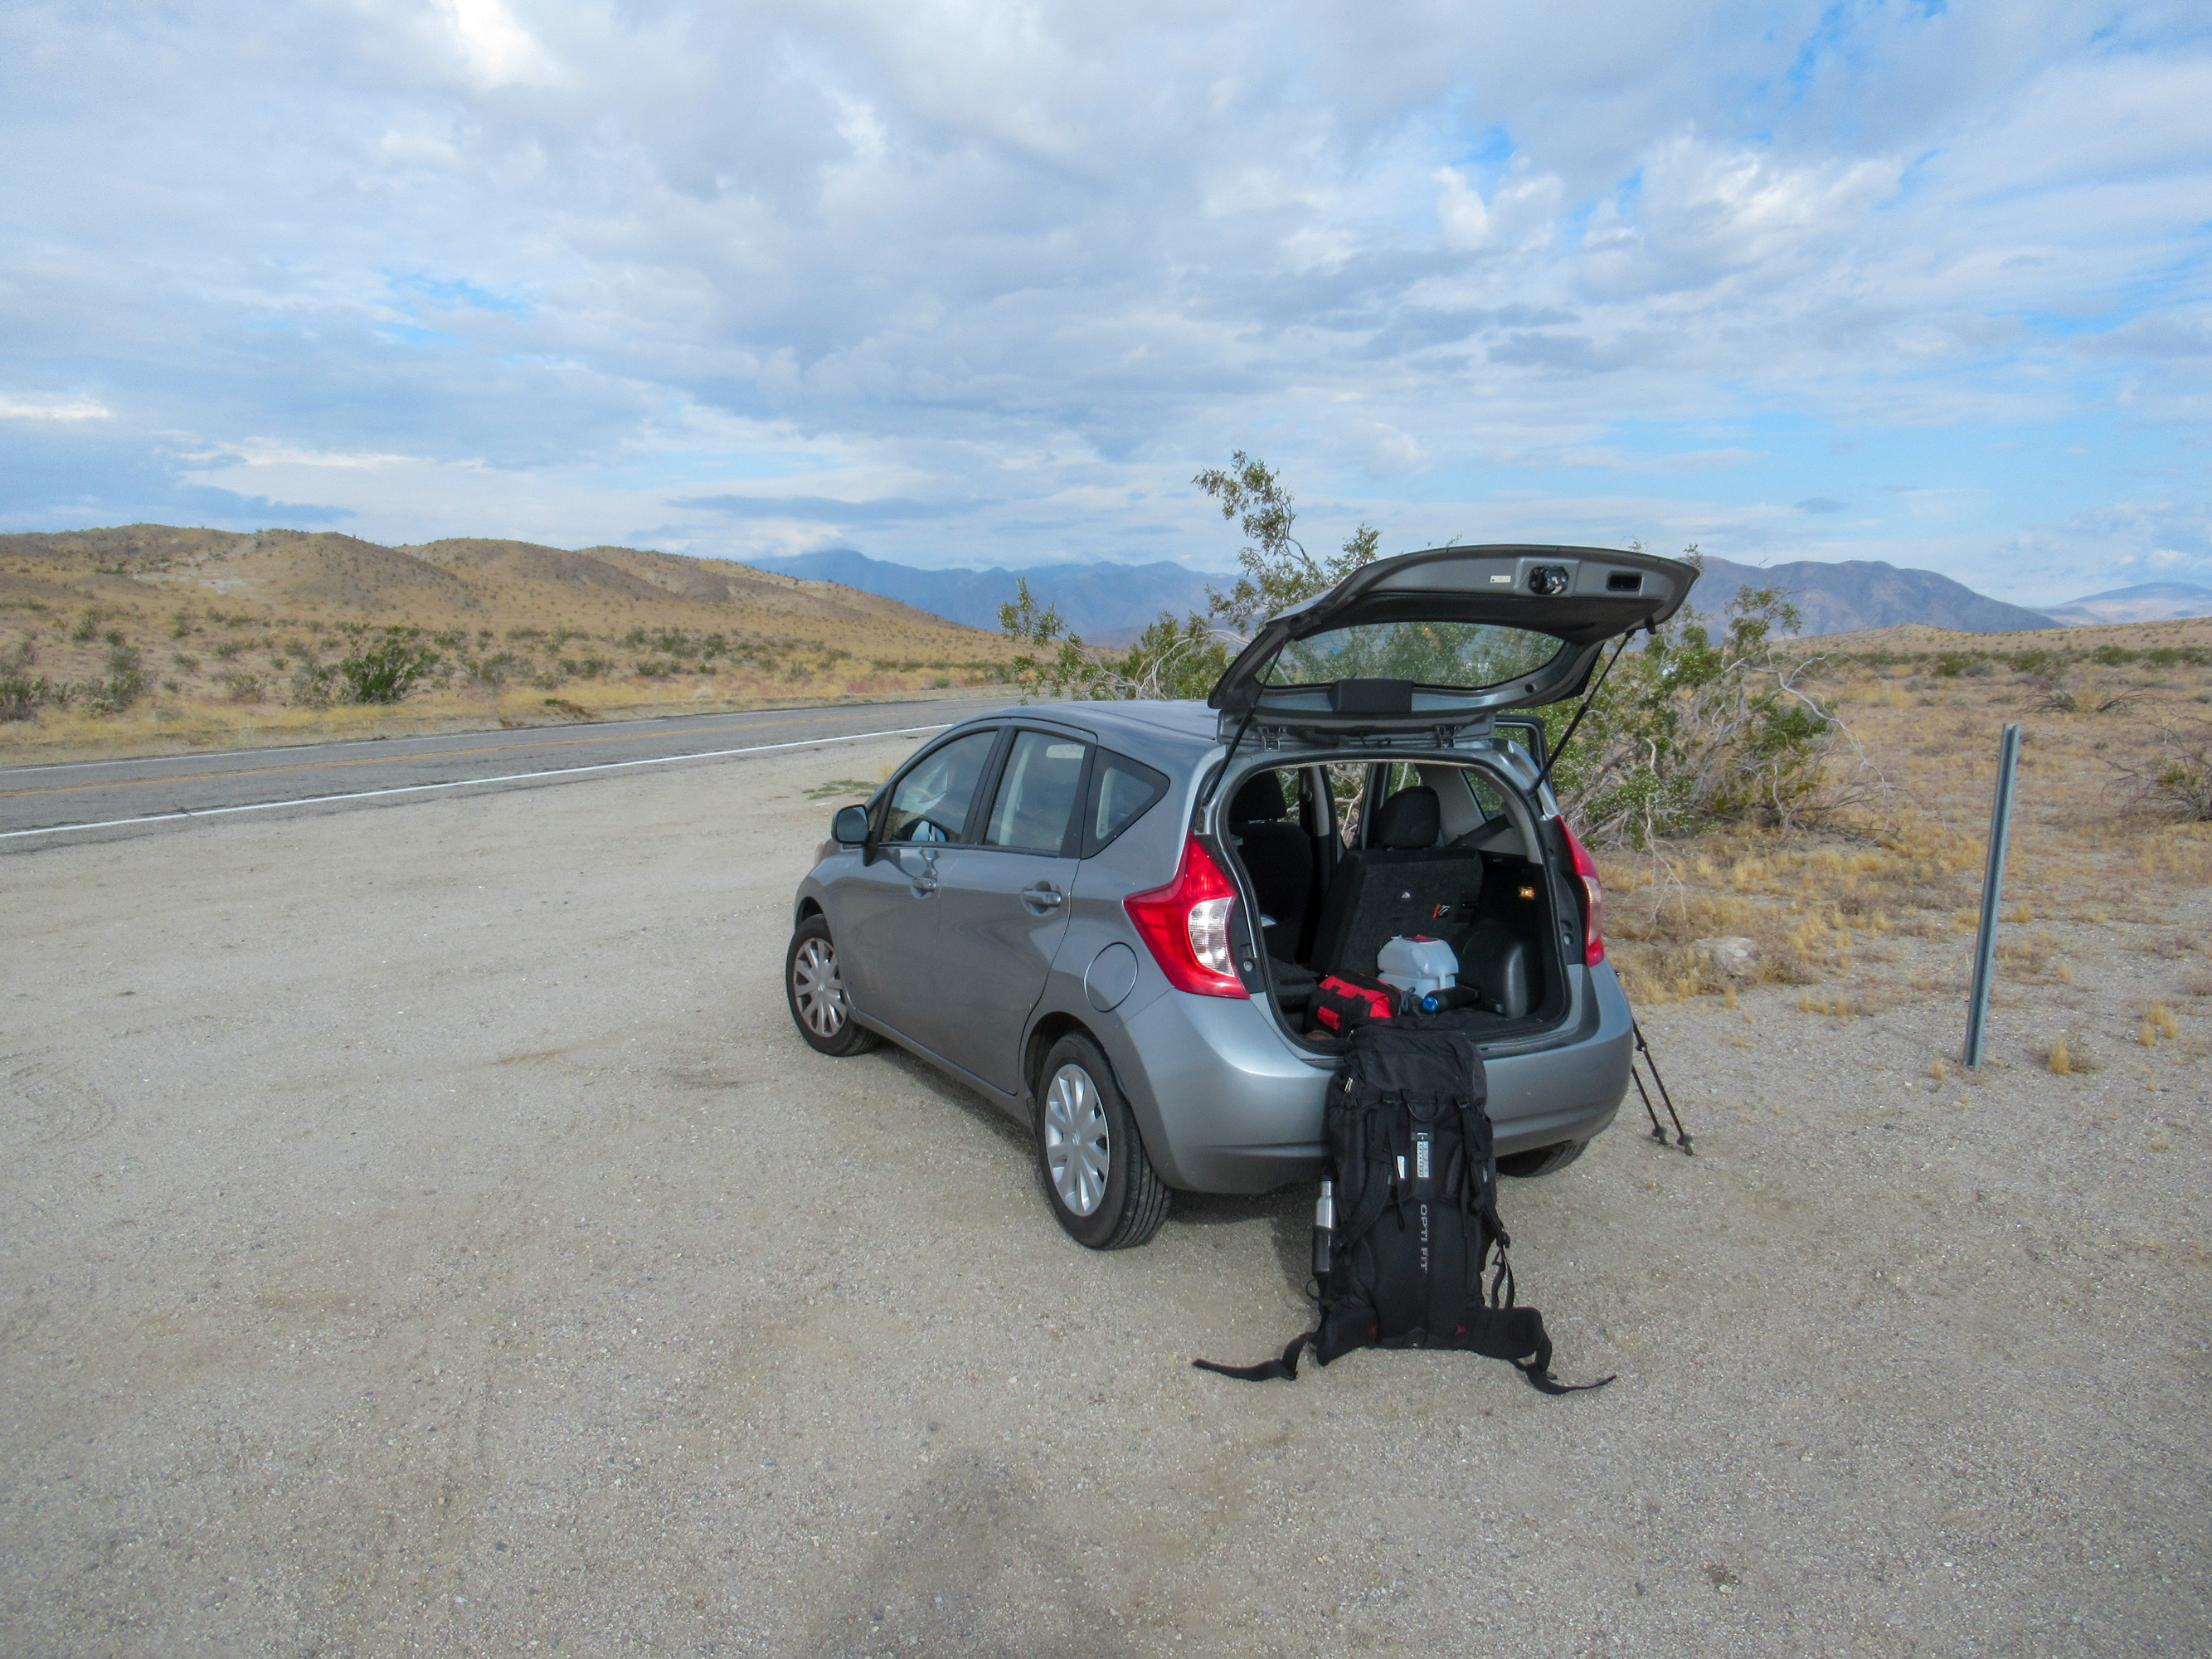 My Nissan Versa parked at the trailhead for Rabbit Peak in the Anza Borrego desert.